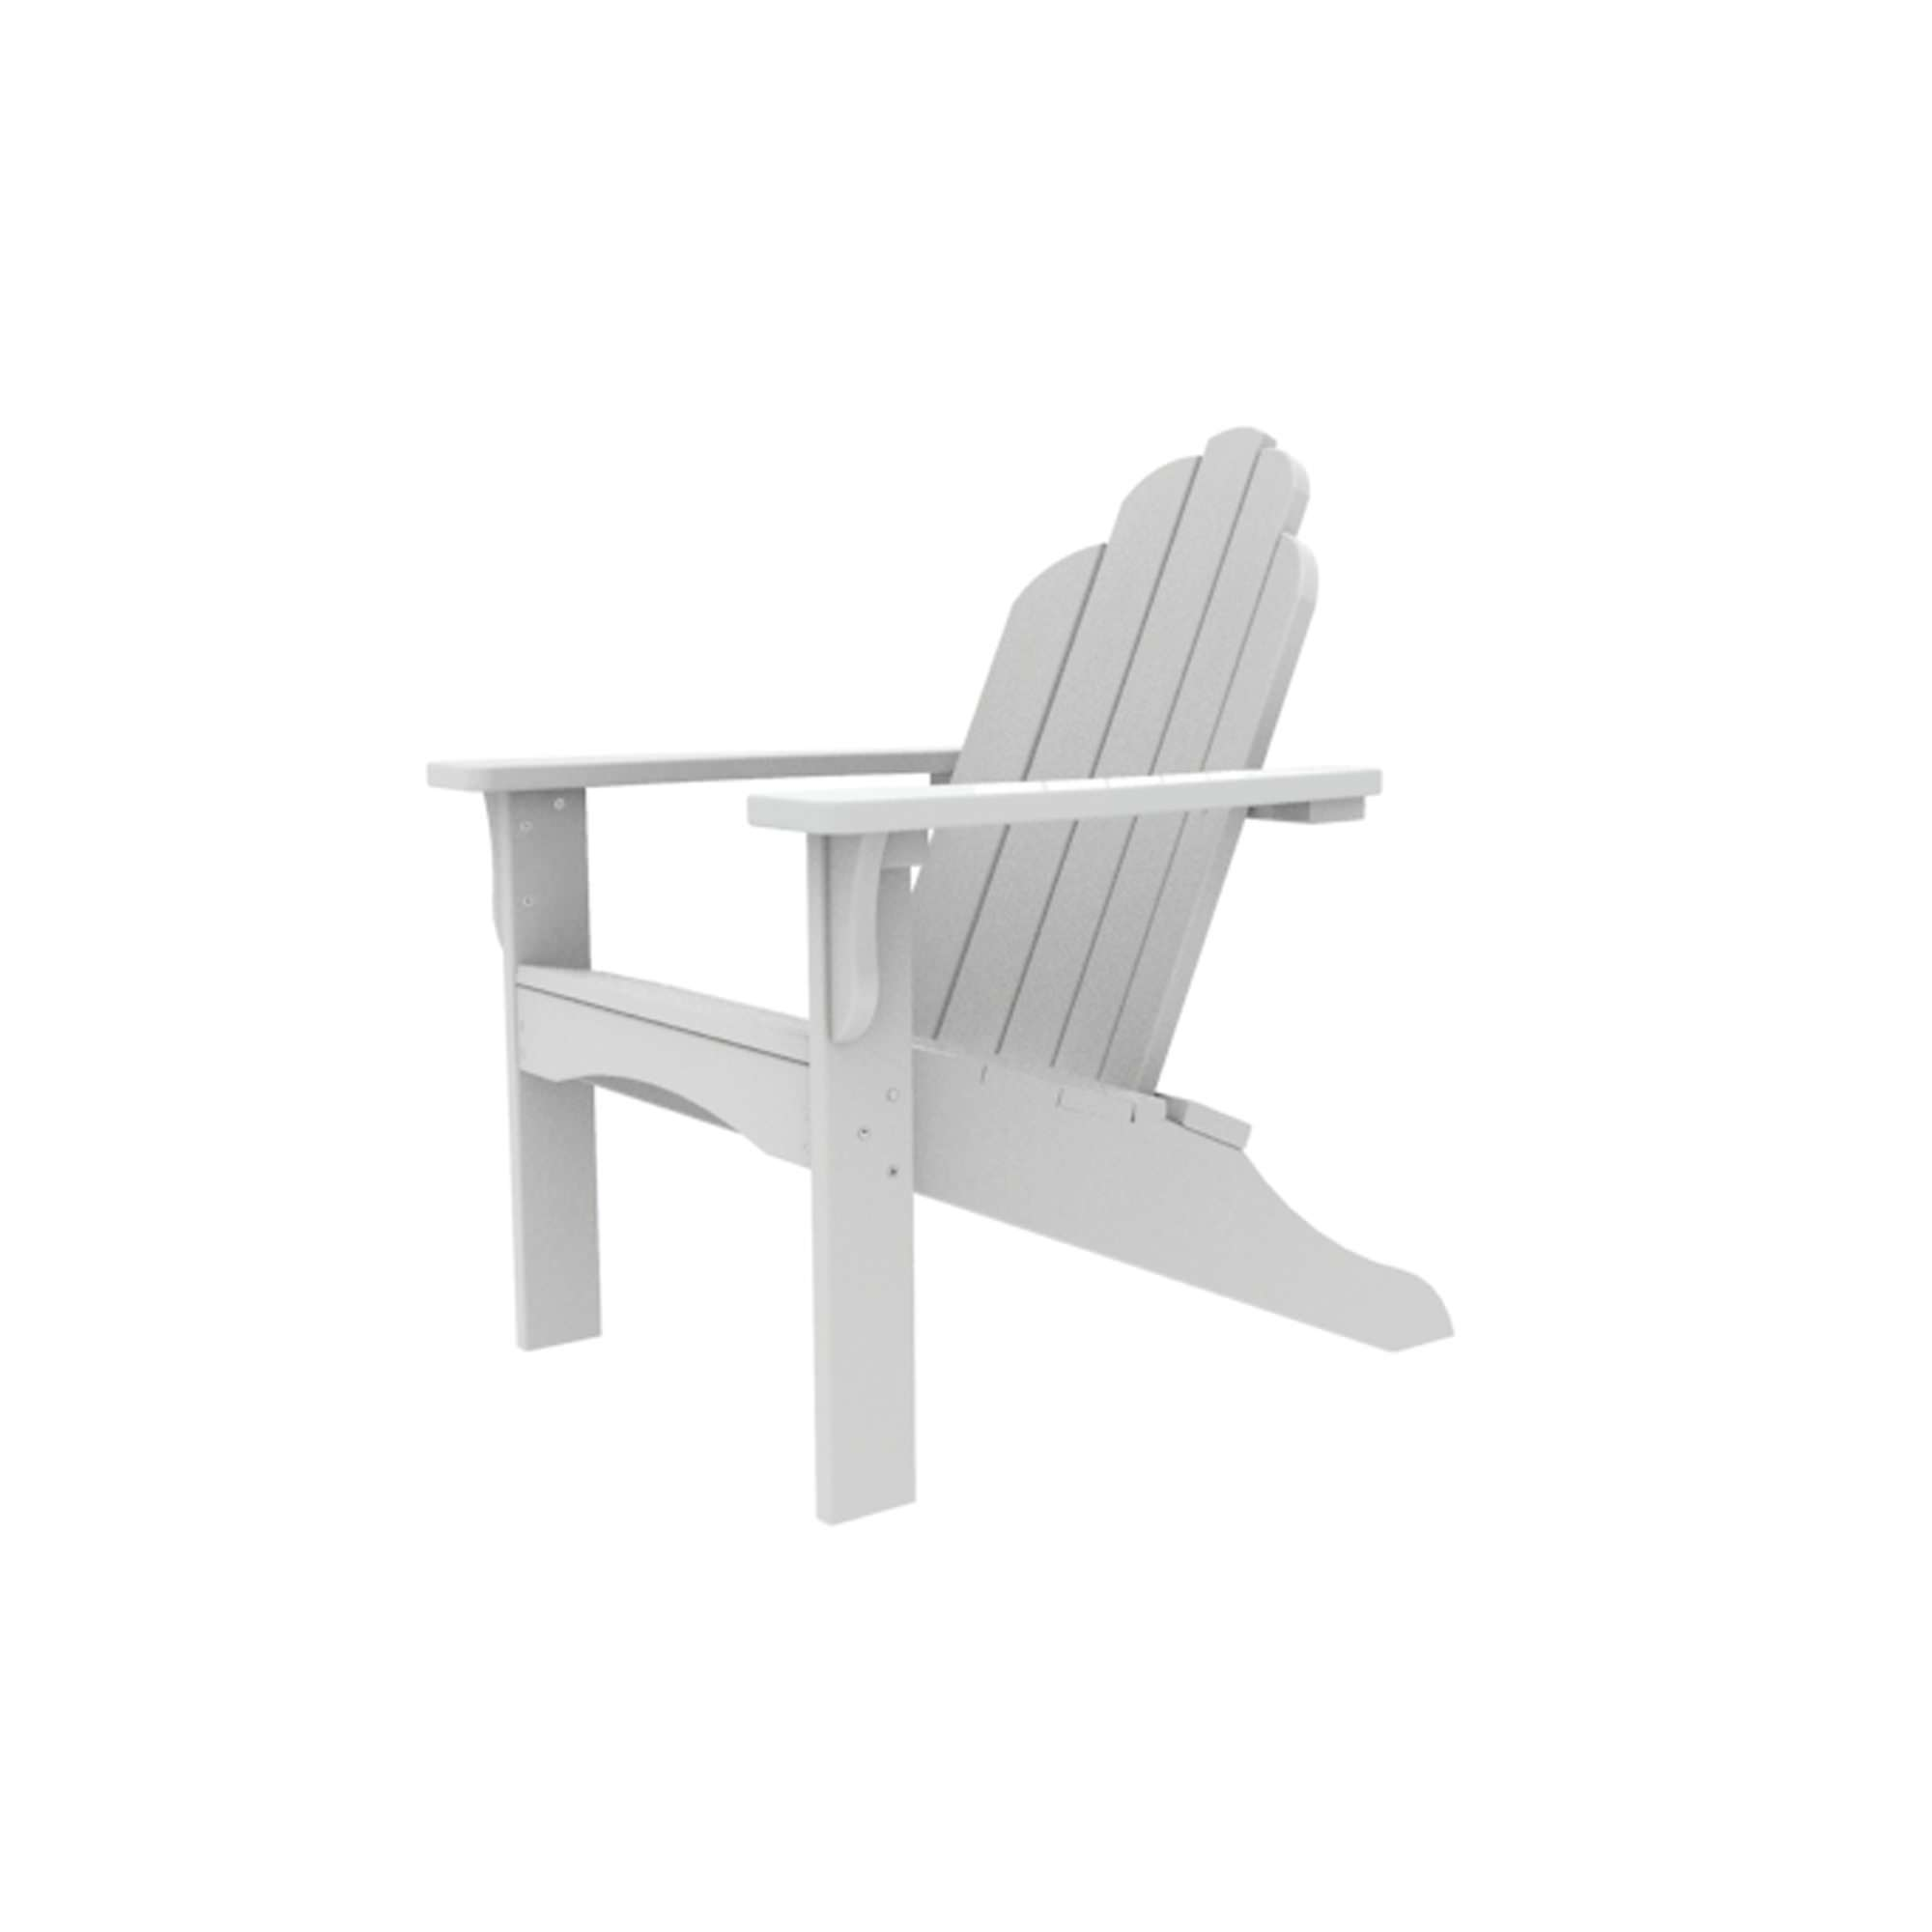 Yarmouth Kids Adirondack Chair Malibu Outdoor Living Furniture Outdoors Dfohome